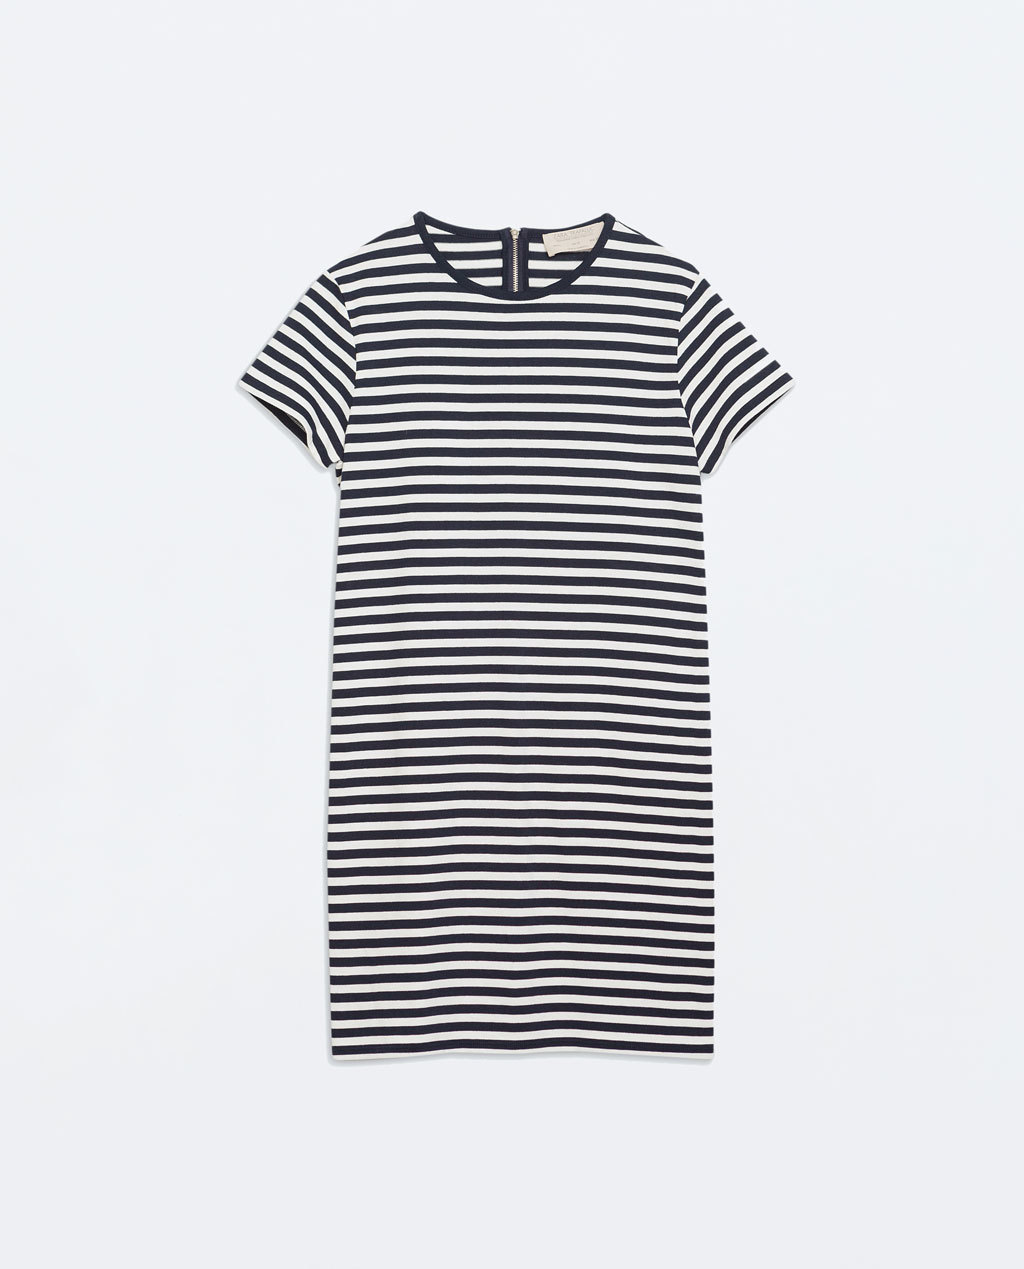 Striped Dress - style: t-shirt; length: mid thigh; pattern: horizontal stripes; secondary colour: white; predominant colour: navy; occasions: casual, creative work; fit: straight cut; fibres: cotton - 100%; neckline: crew; sleeve length: short sleeve; sleeve style: standard; texture group: jersey - clingy; pattern type: fabric; pattern size: standard; season: a/w 2014; embellishment location: back